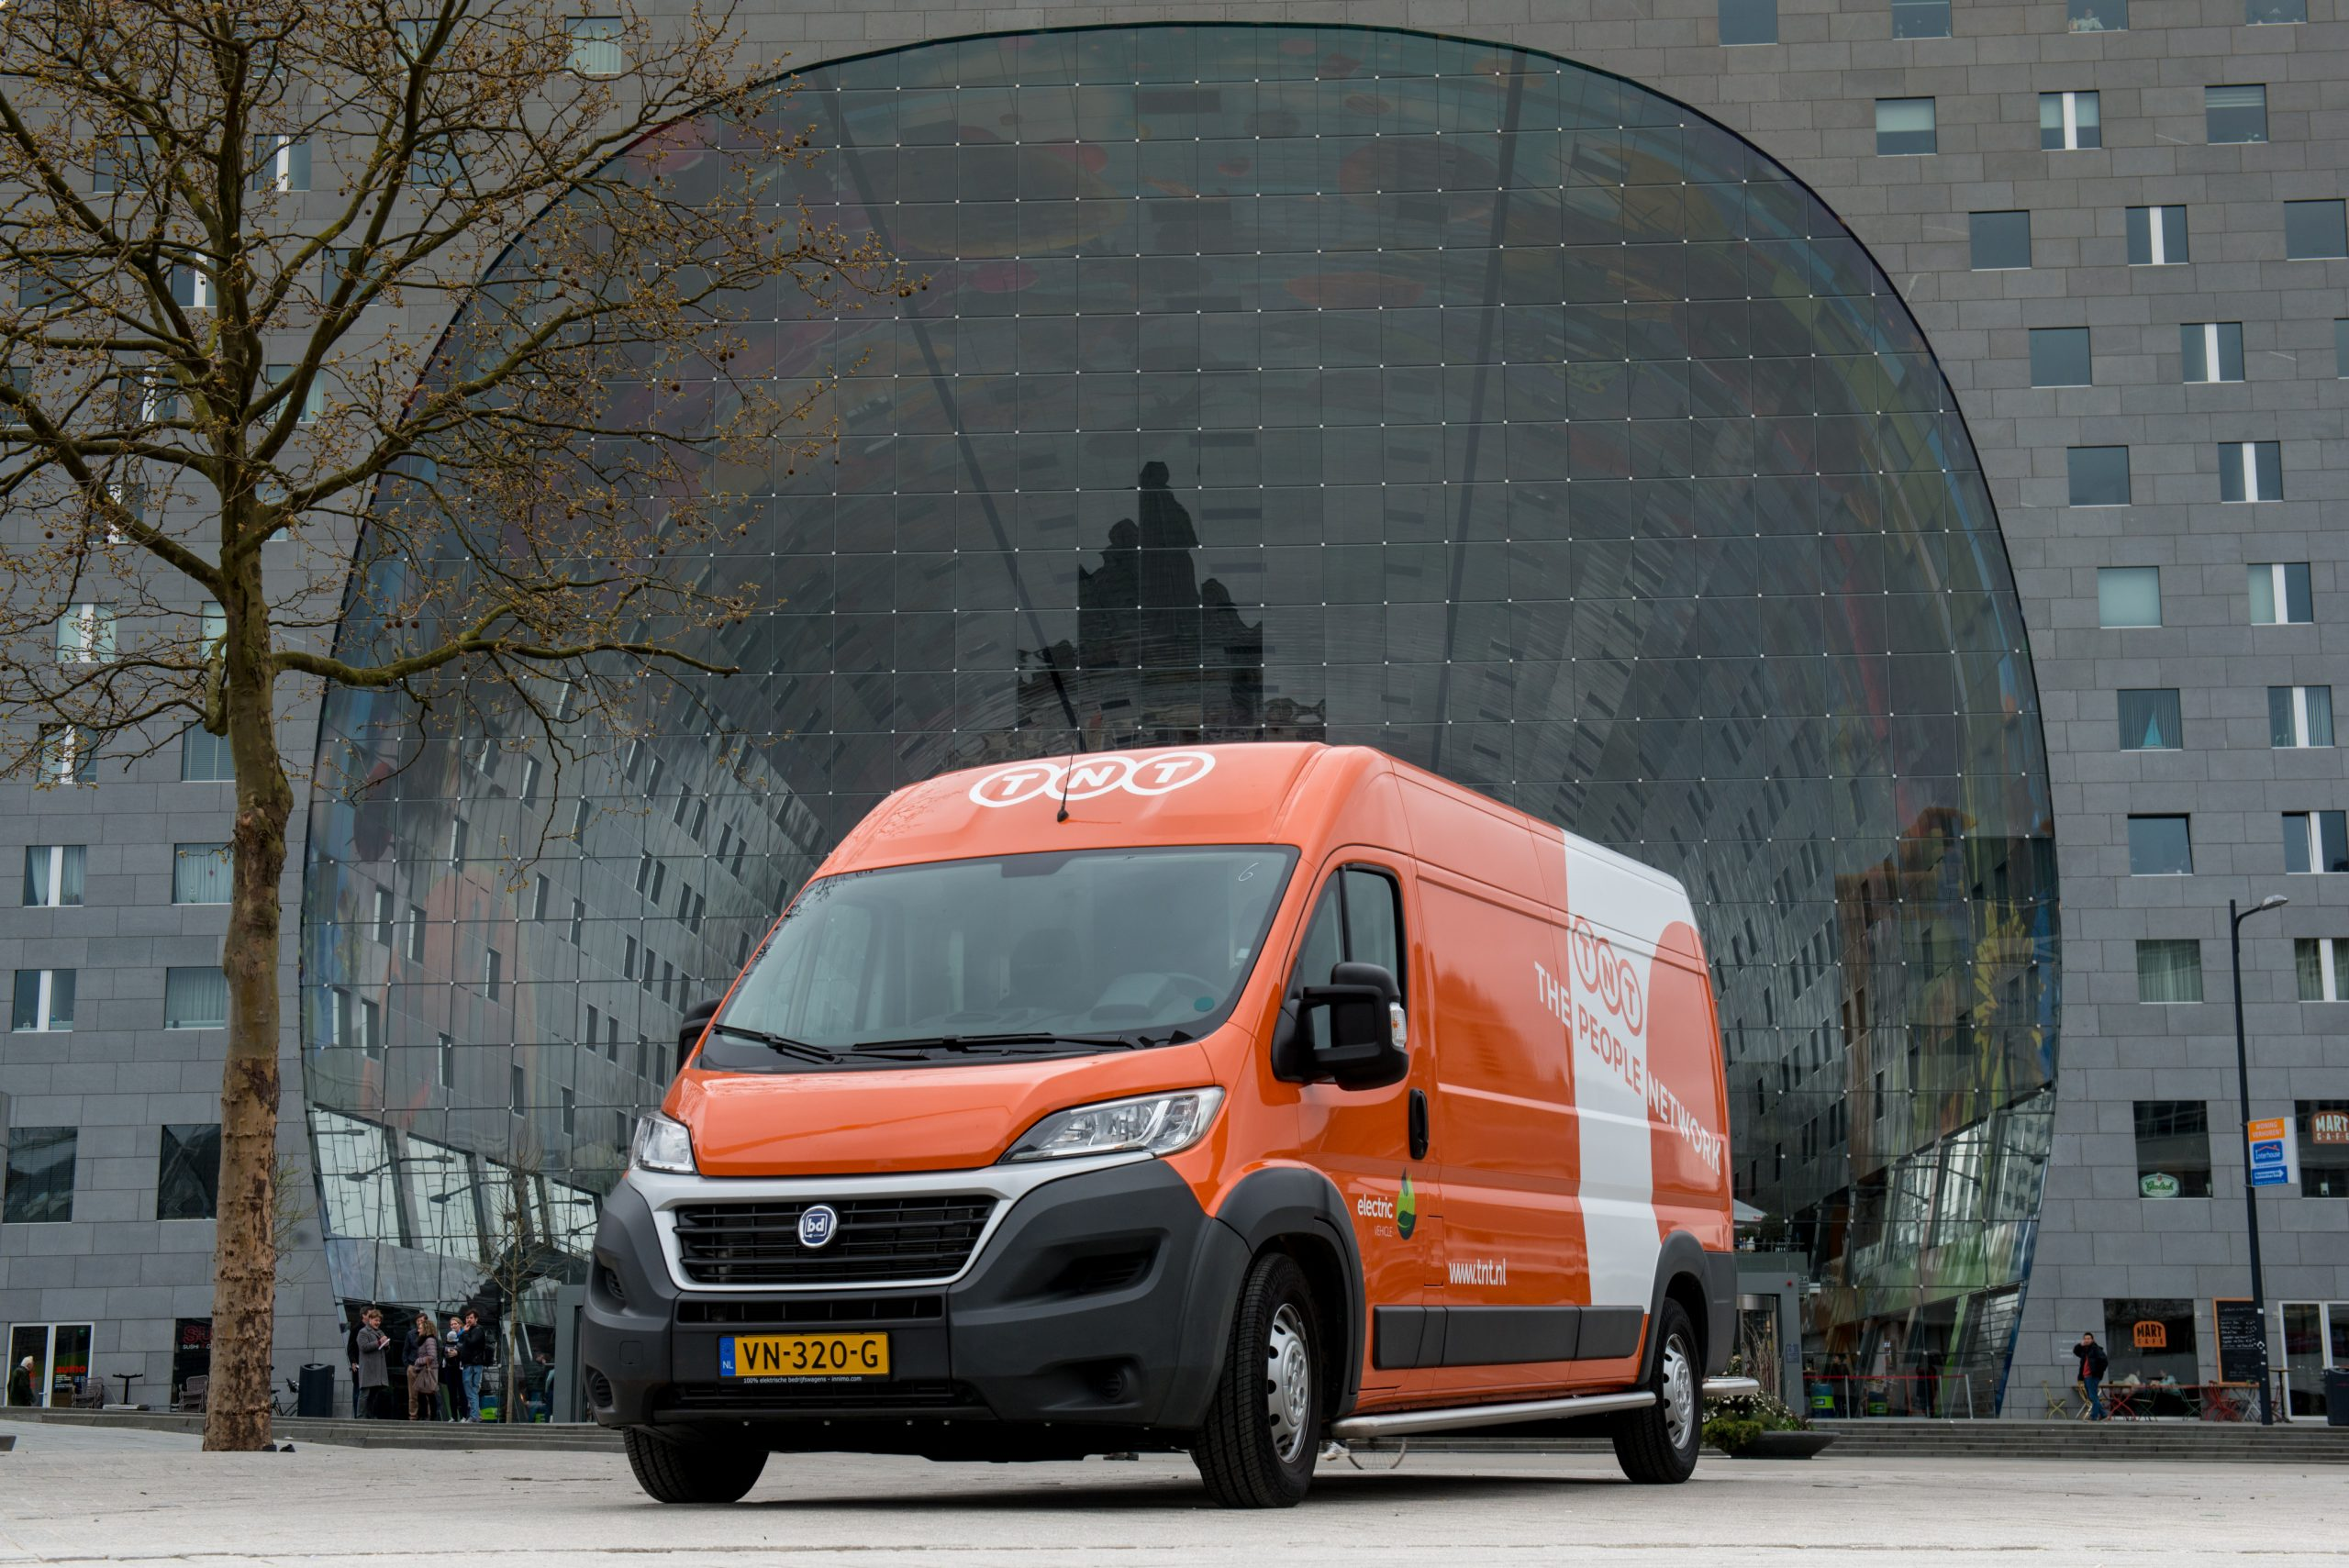 TNT introduces electric express delivery vehicles in Amsterdam and Rotterdam